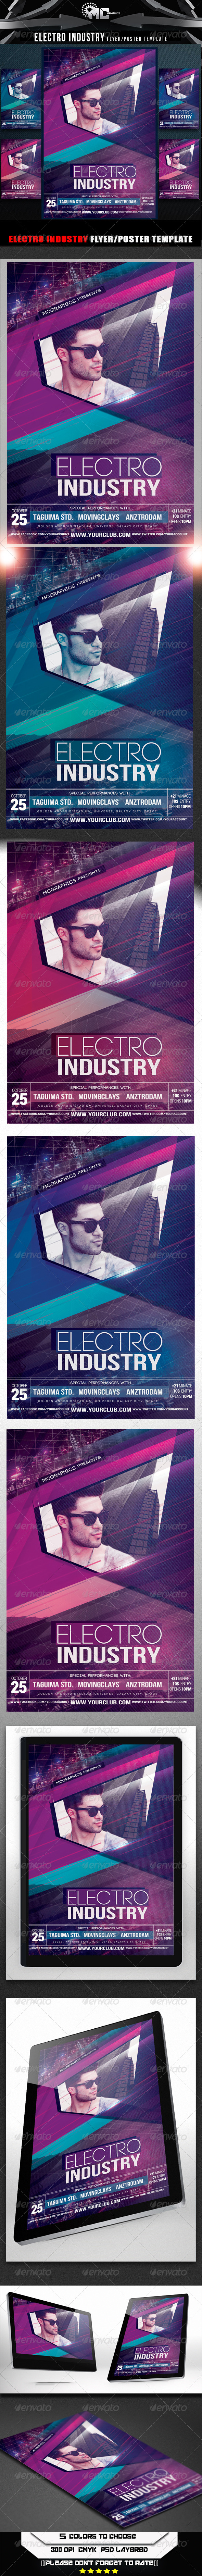 GraphicRiver Electro Industry Flyer Template 8680454